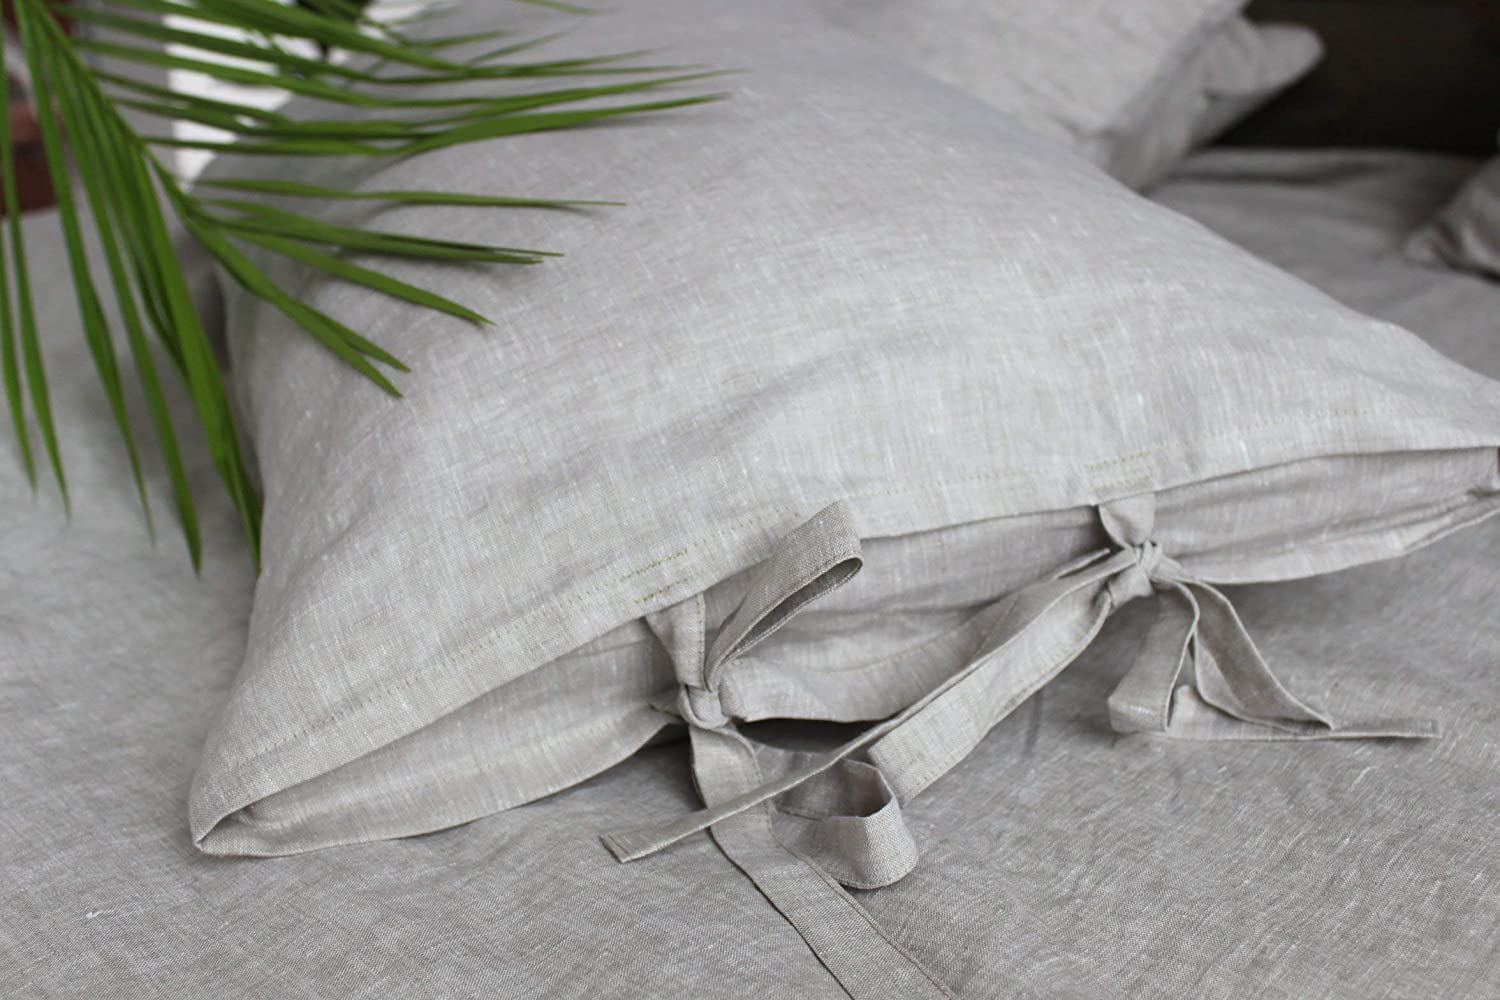 Natural Linen Pillow Sham with Ties-Standard, Queen, King, Euro Sizes -Natural, White or Grey Colors Euro Sizes -Natural